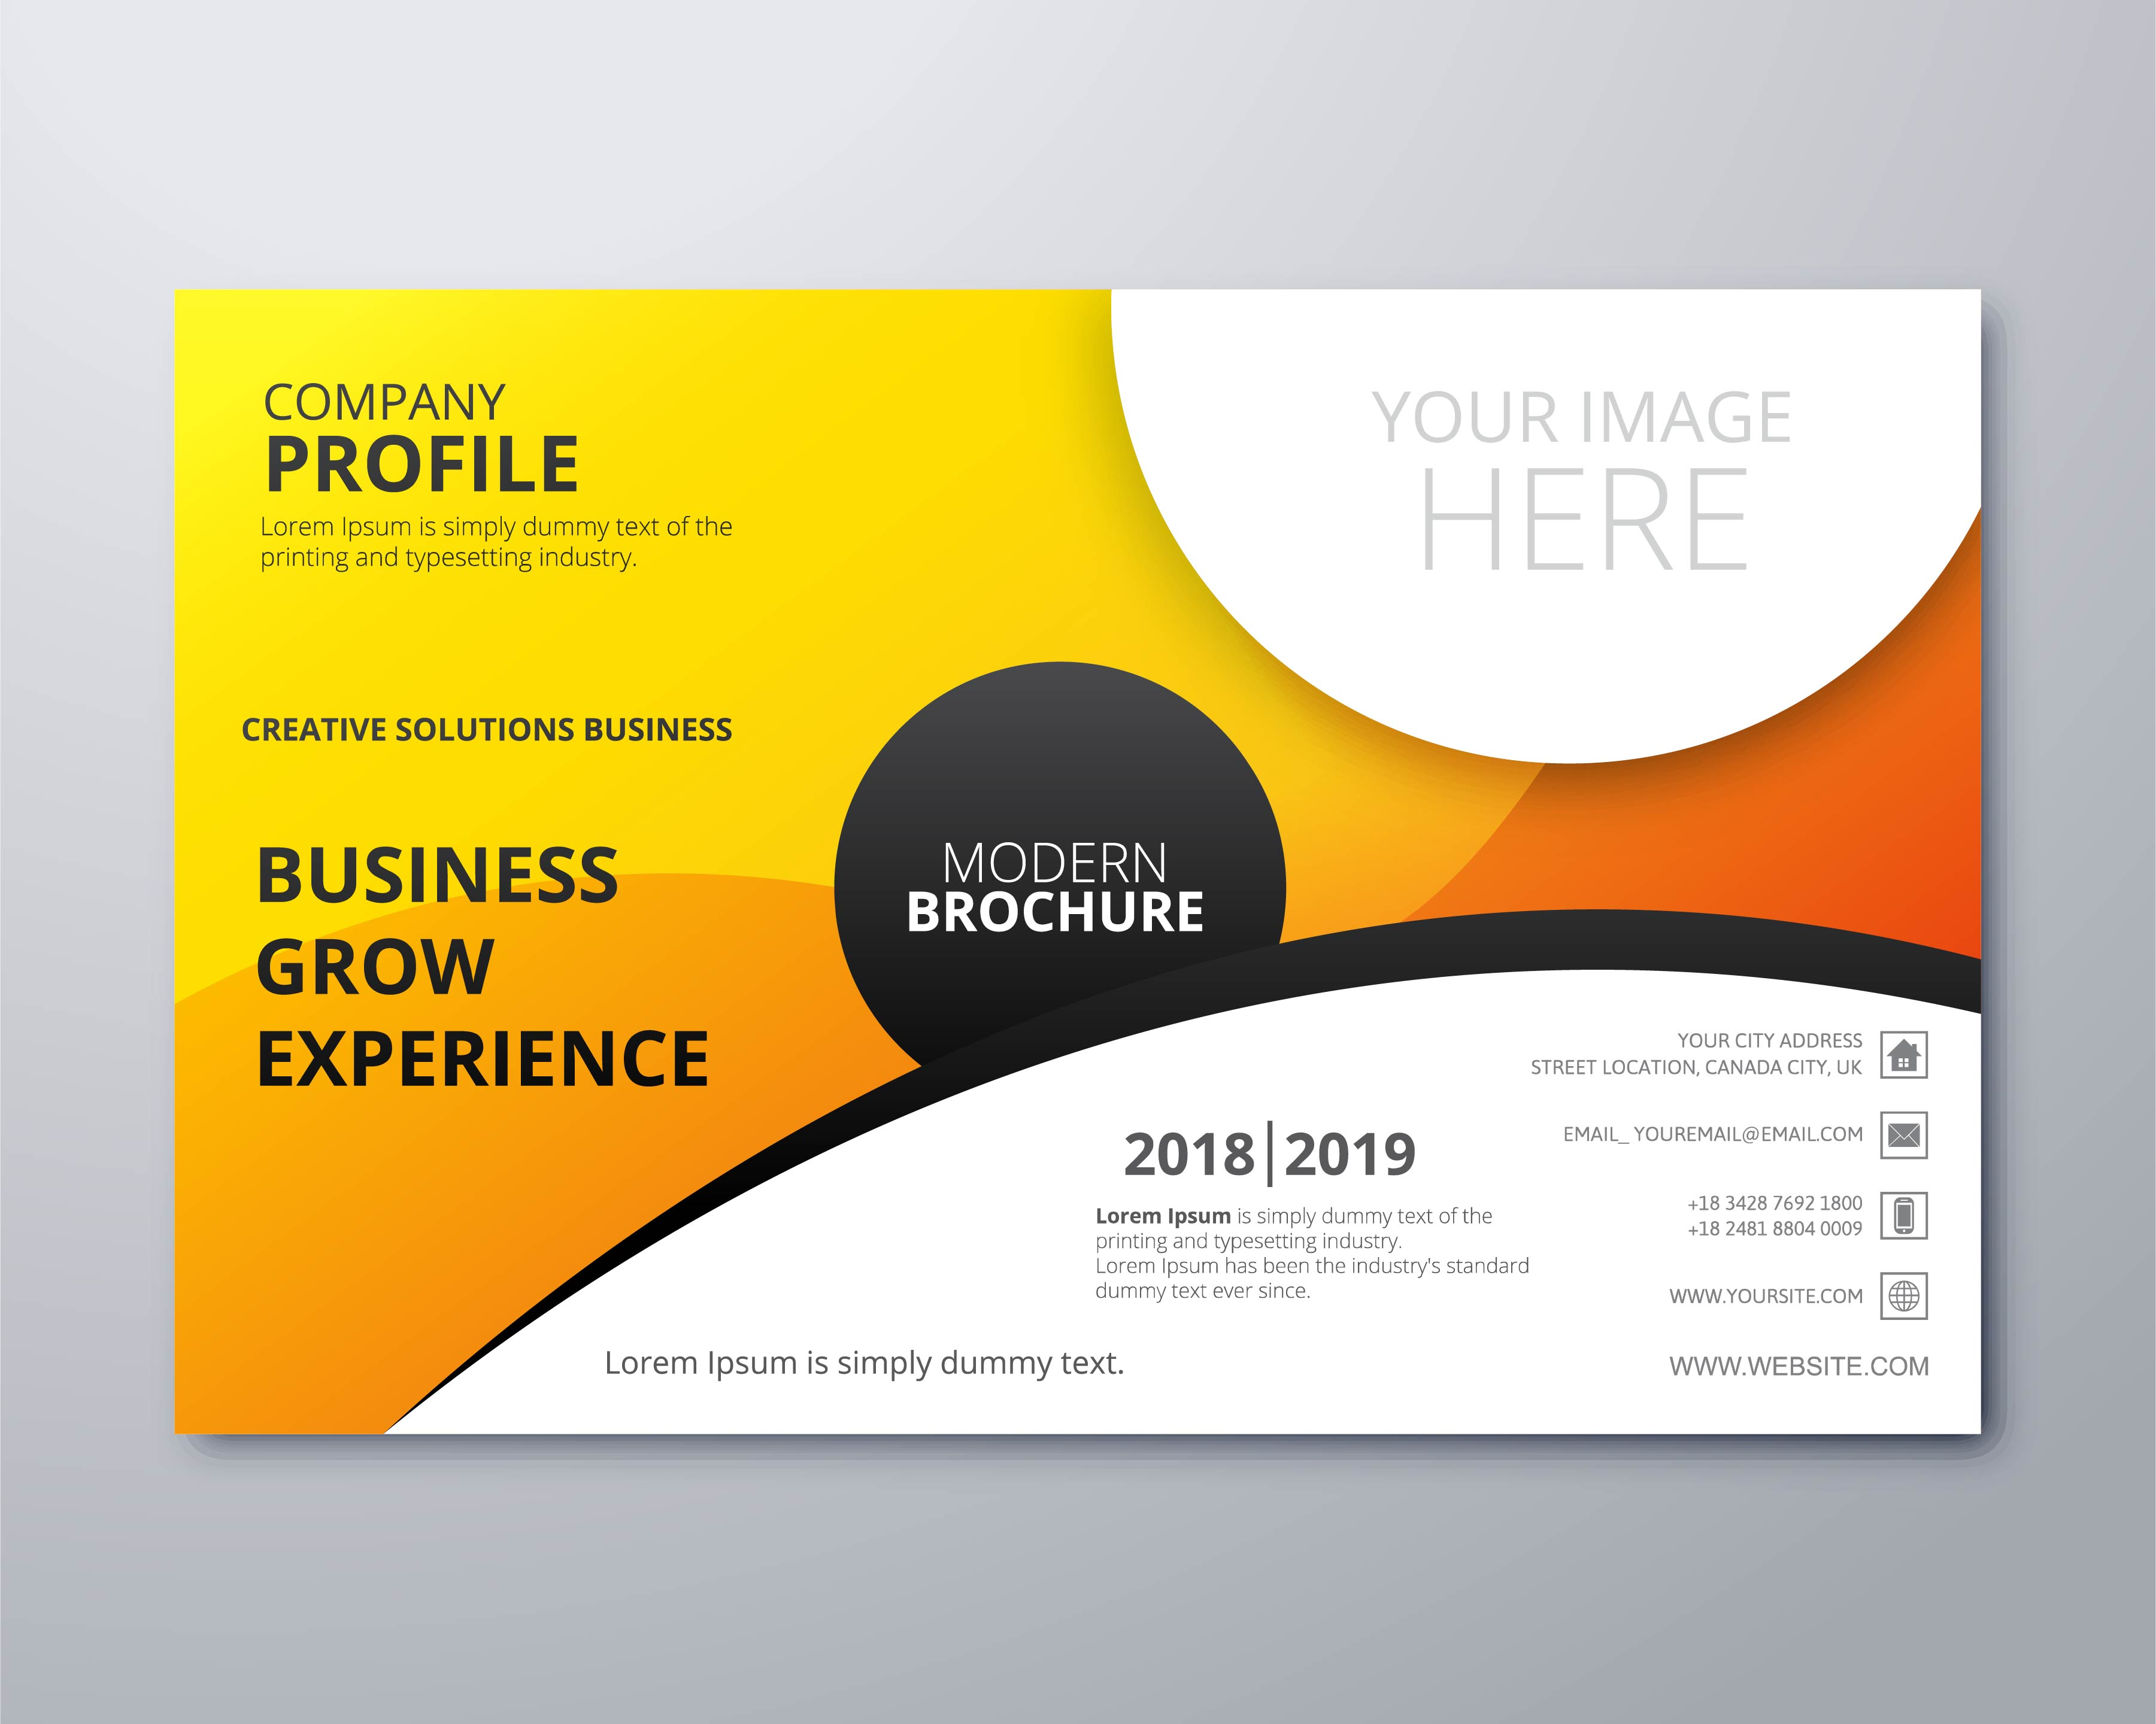 Colorful Business Brochure Template Vector Wave Design Download Free Vectors Clipart Graphics Vector Art